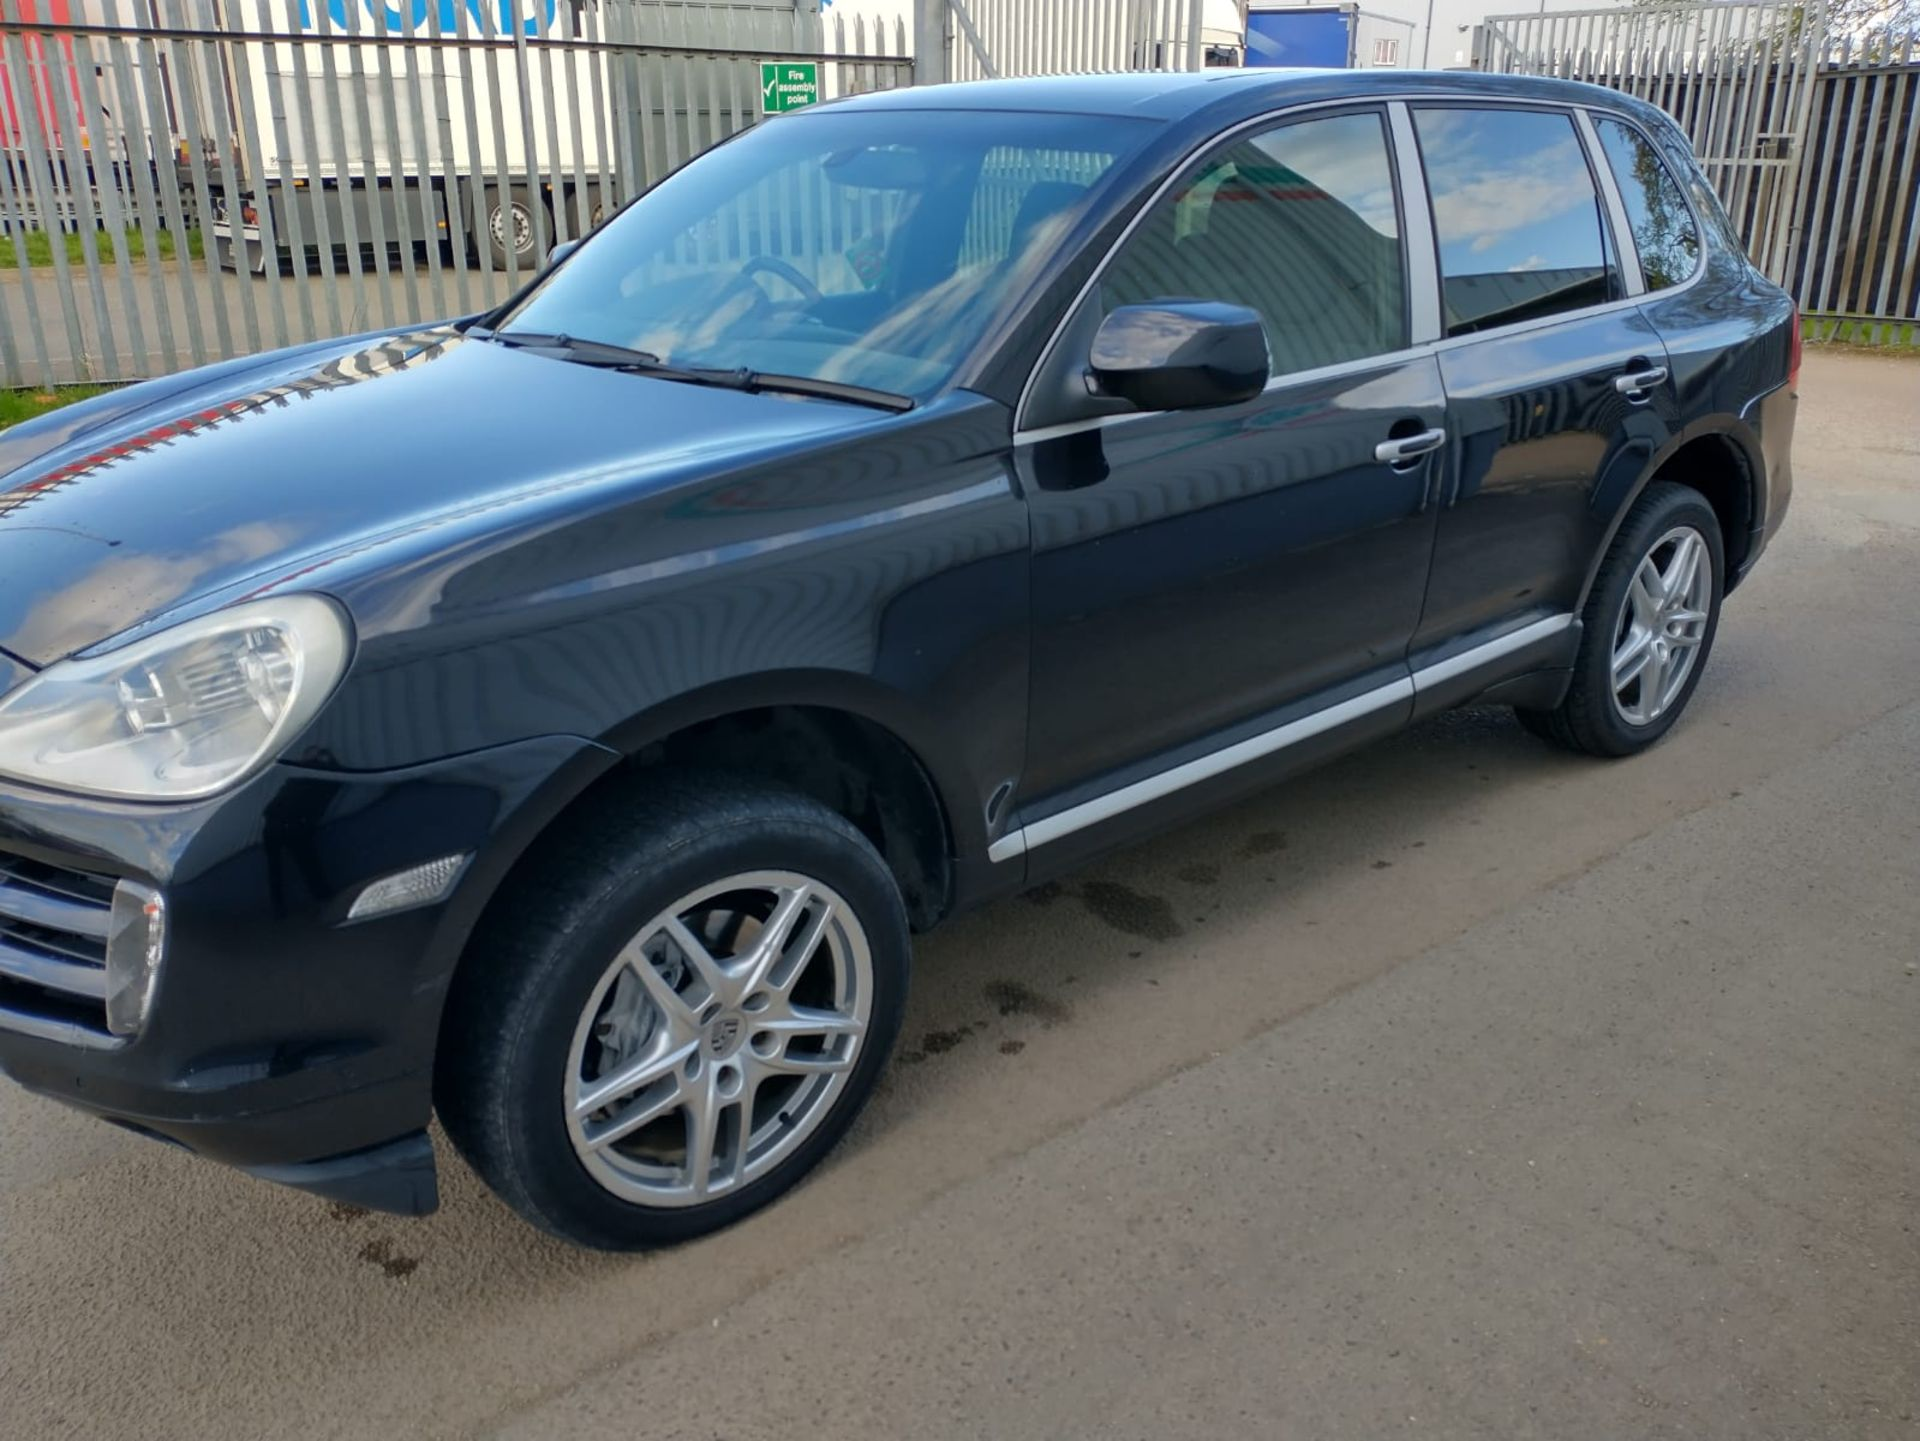 2008 Porsche Cayenne Tiptronic 3.6 5Dr SUV - CL505 - NO VAT ON THE HAMMER - Location: Corby, Northam - Image 3 of 16